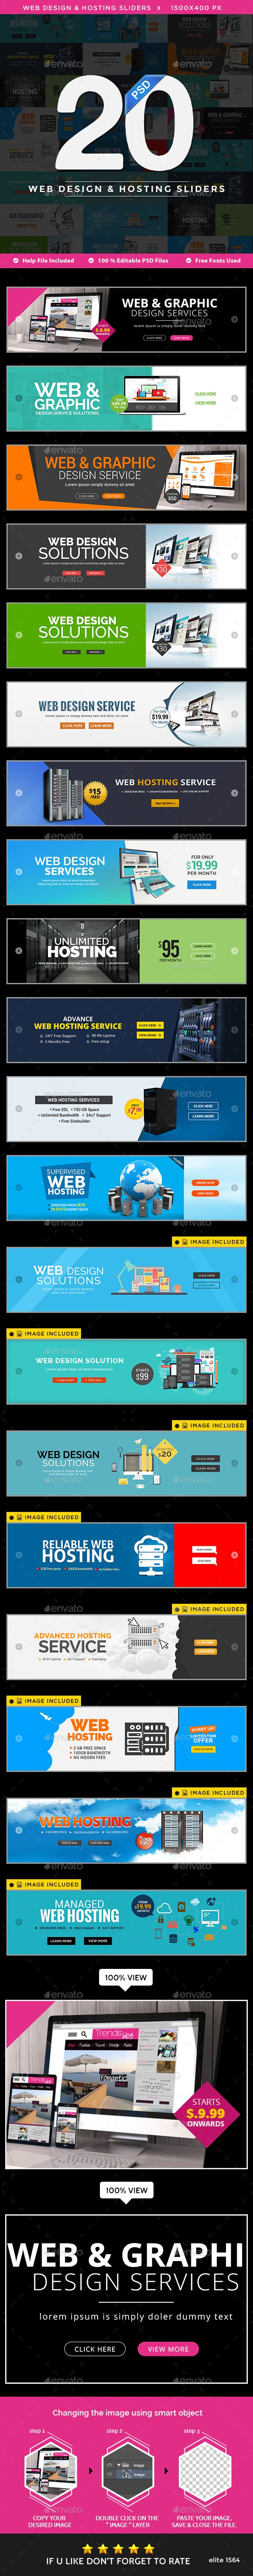 Web Design & Hosting Sliders - 20 Designs Templates PSD. Download here: http://graphicriver.net/item/web-design-hosting-sliders-20-designs/16535557?ref=ksioks